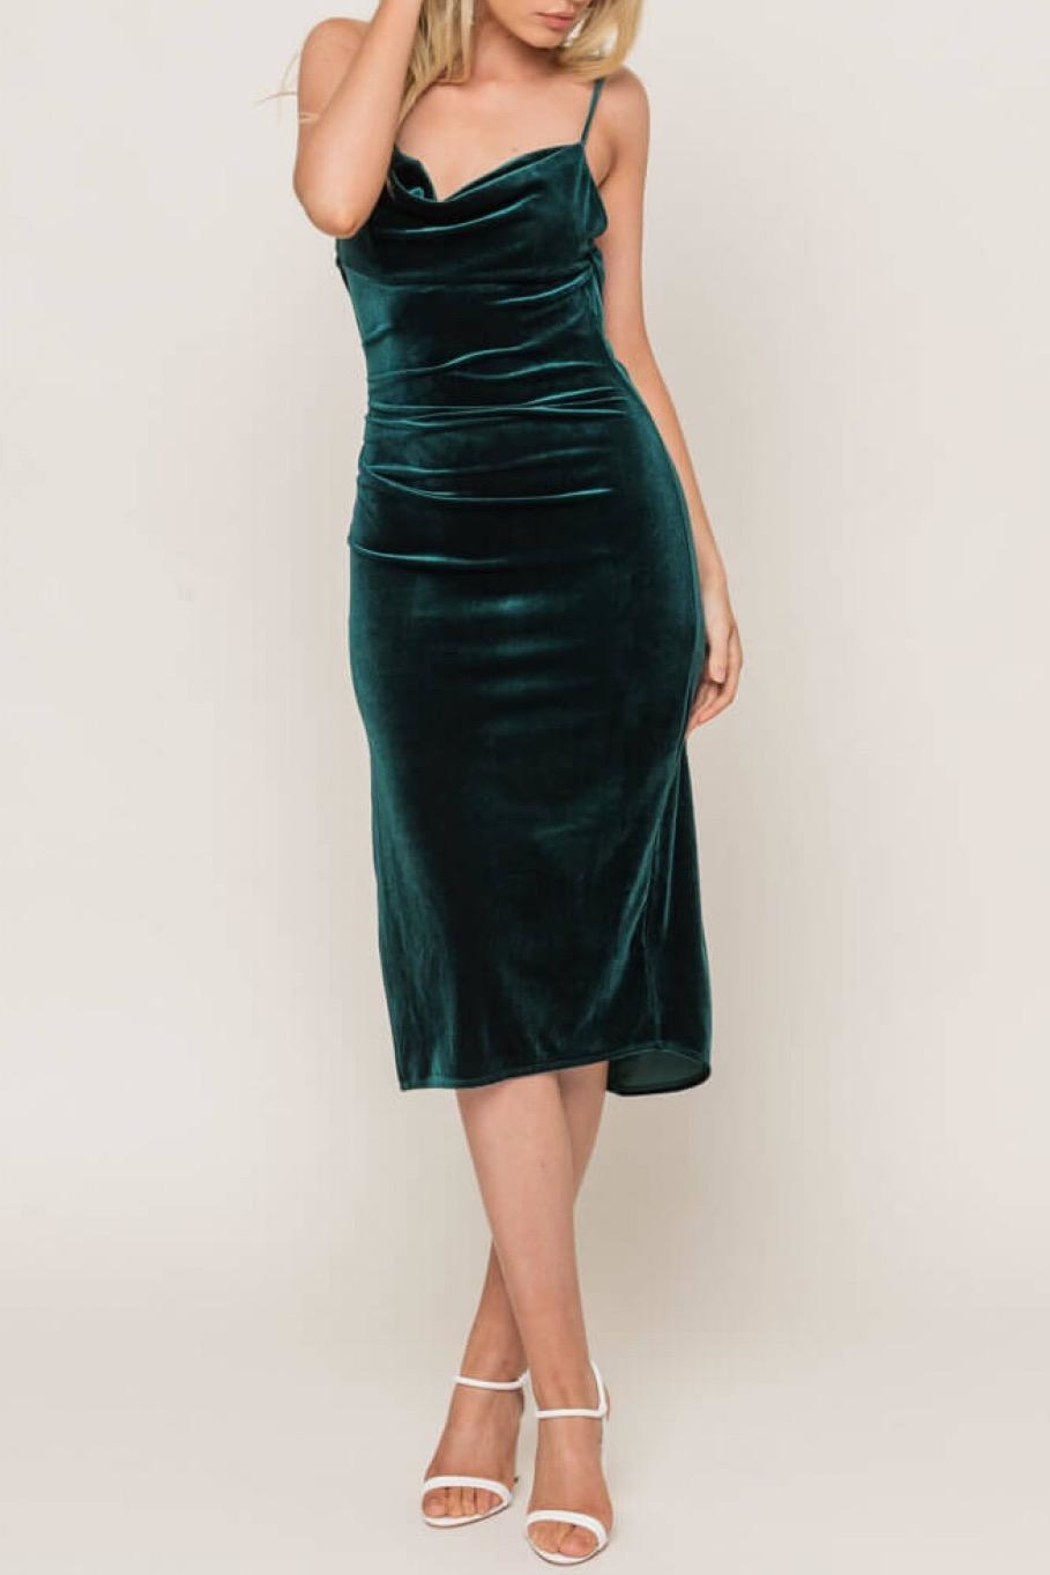 Lush Forest-Green Velvet Midi-Dress - Main Image